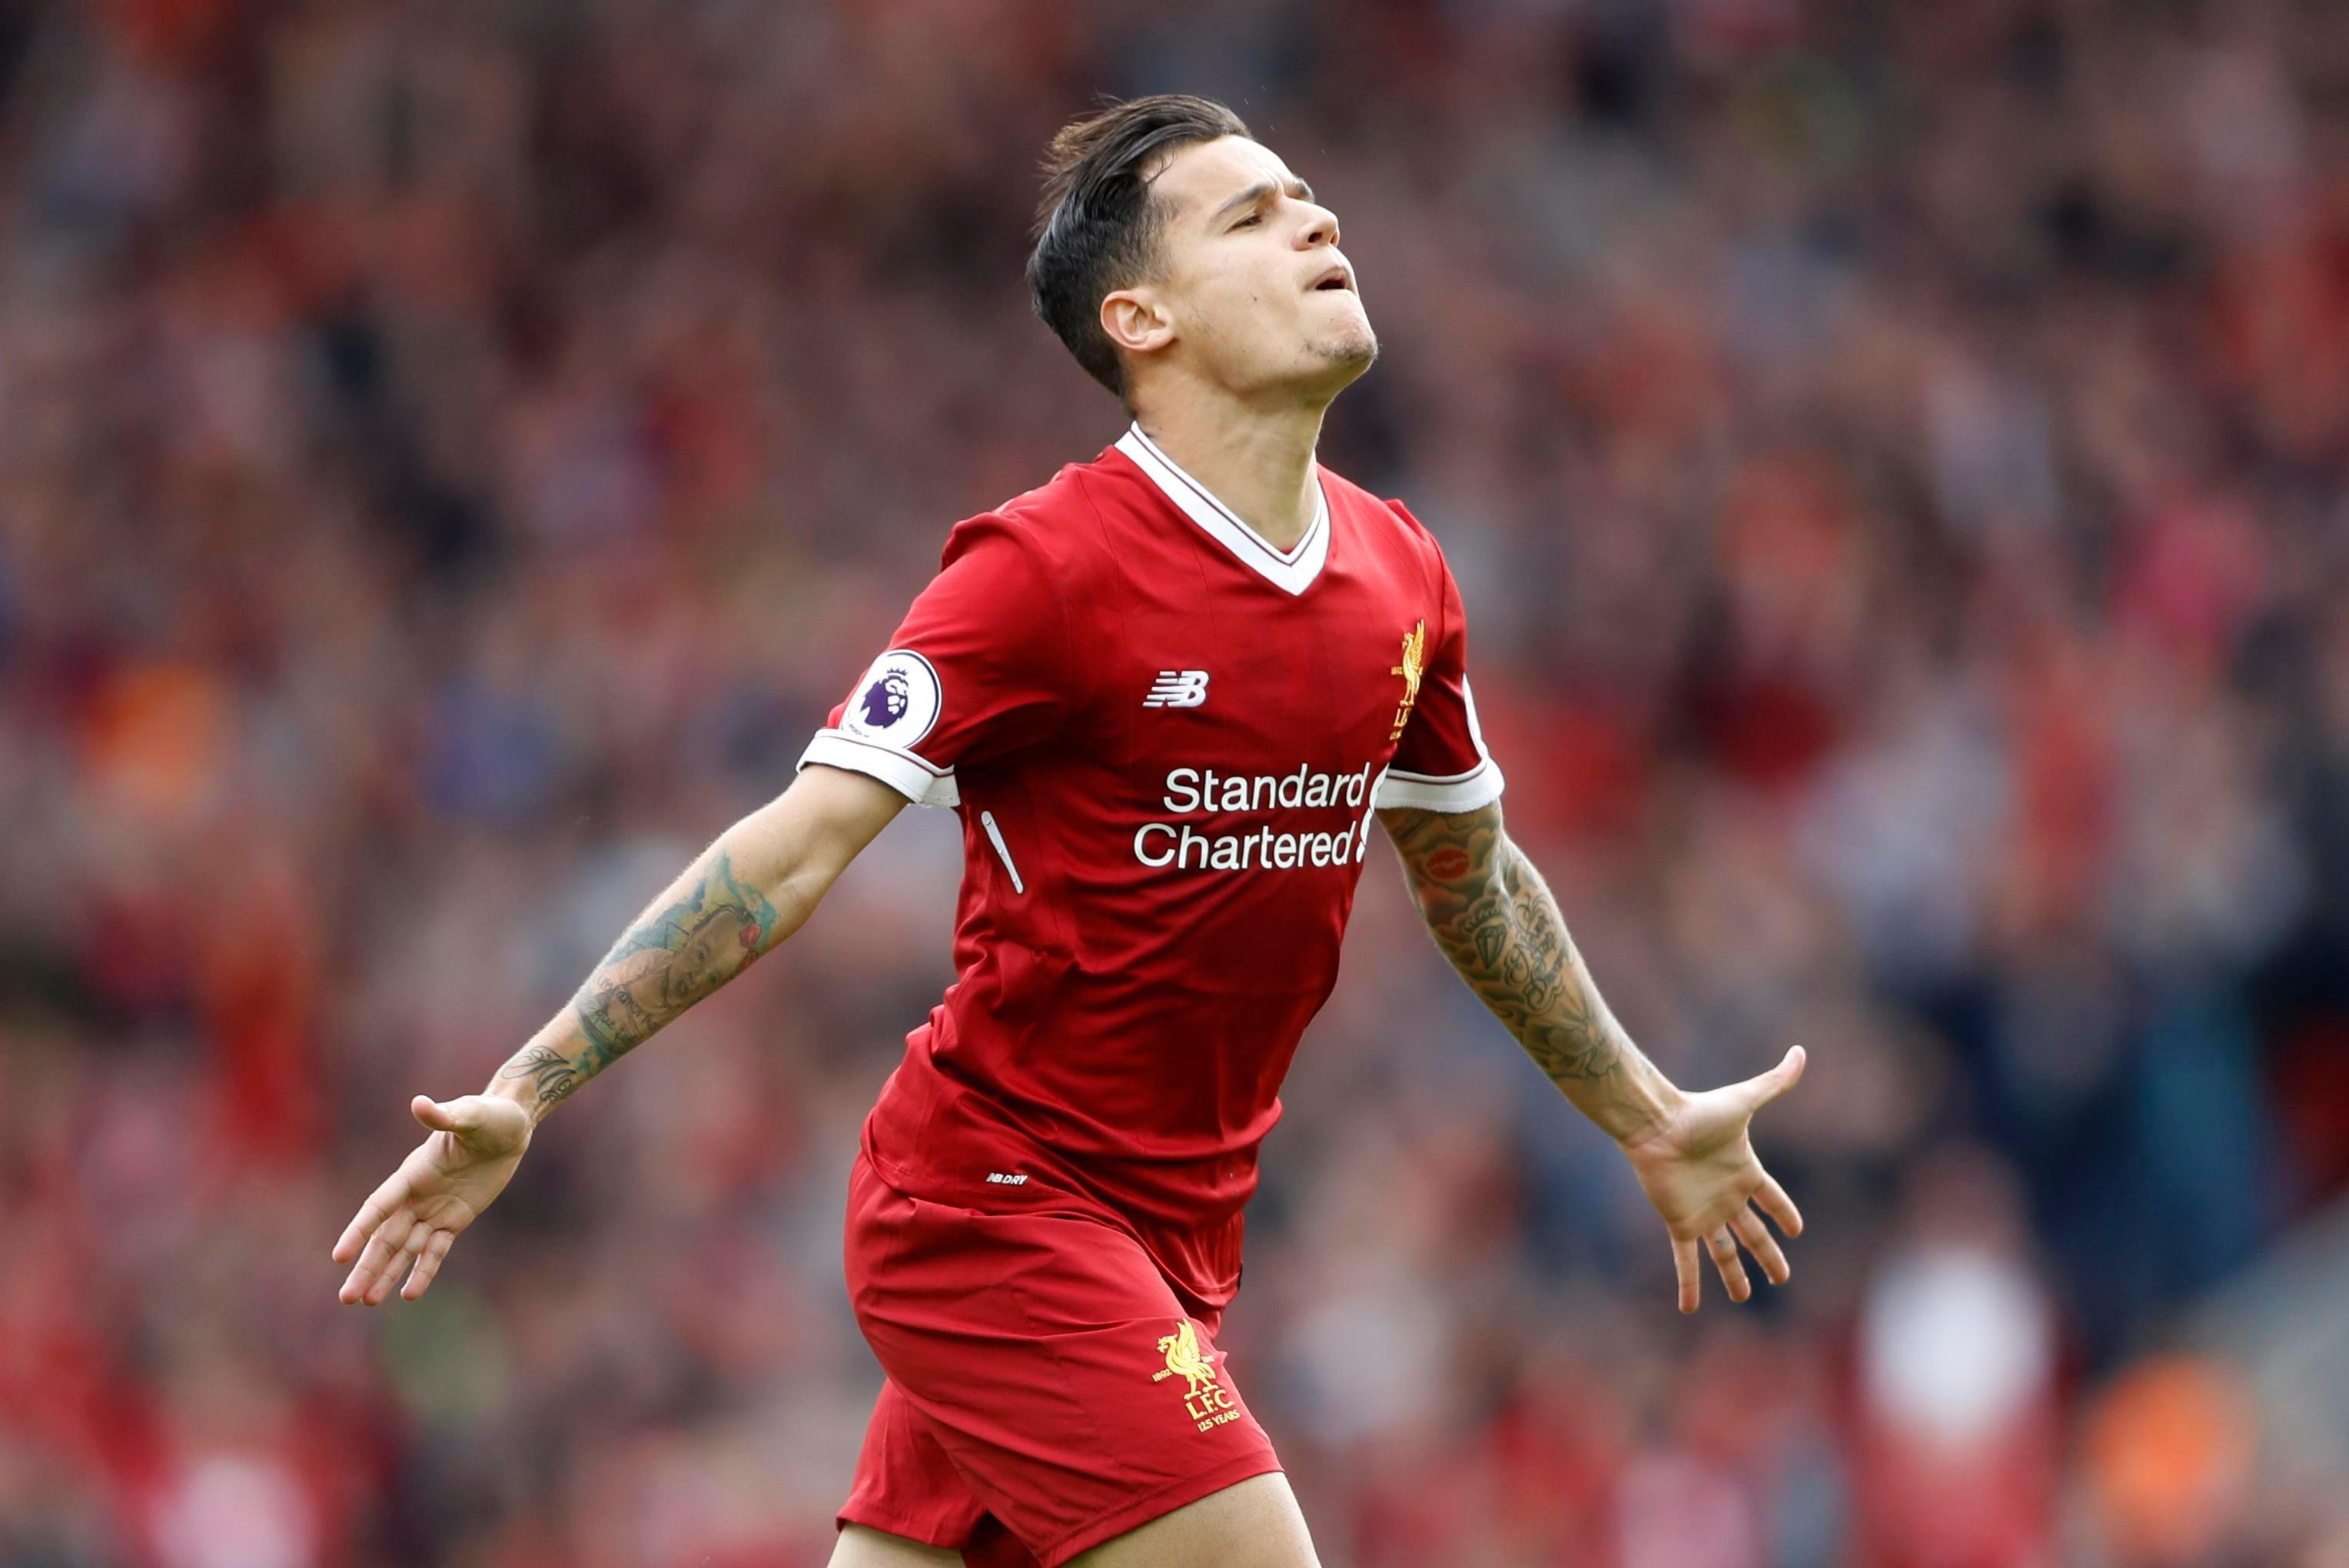 Liverpool star Philippe Coutinho is not for sale, says Jurgen Klopp